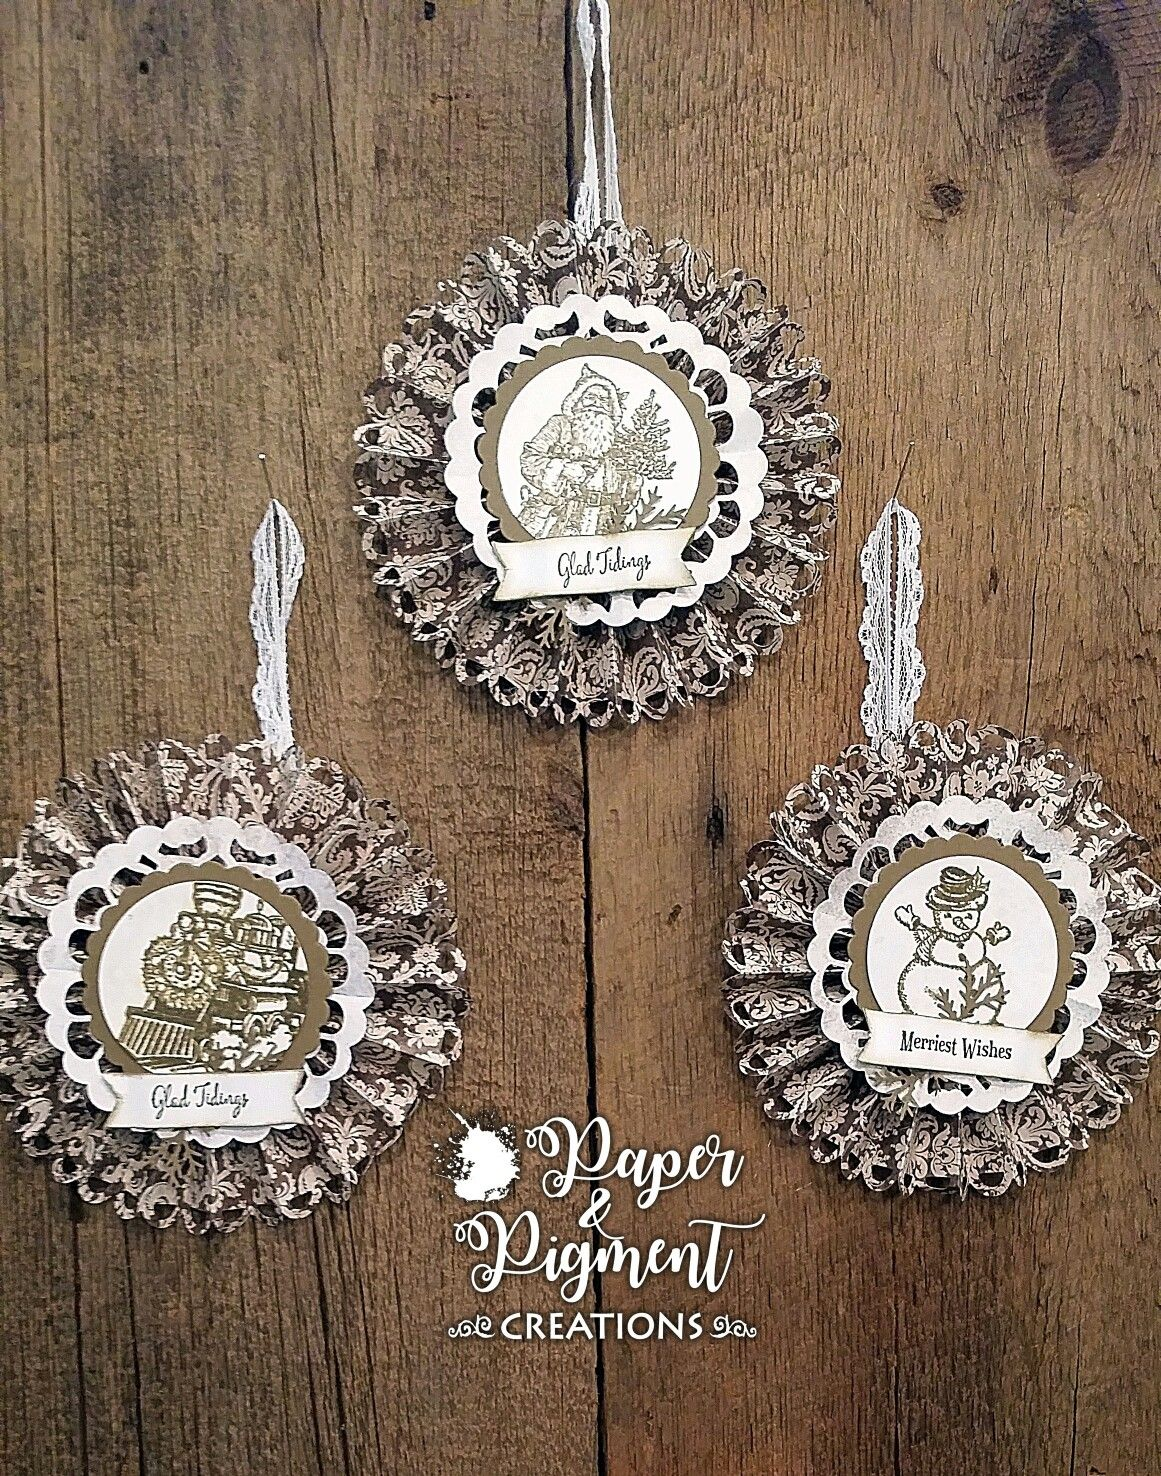 Vintage ornaments using Stampin Up Christmas Magic, Father Christmas, and Merriest Wishes Stamp Sets.  Soft Suede and Shimmer White Cardstocks.   Soft Suede Ink. Rosettes made with DSP from Hobby Lobby.